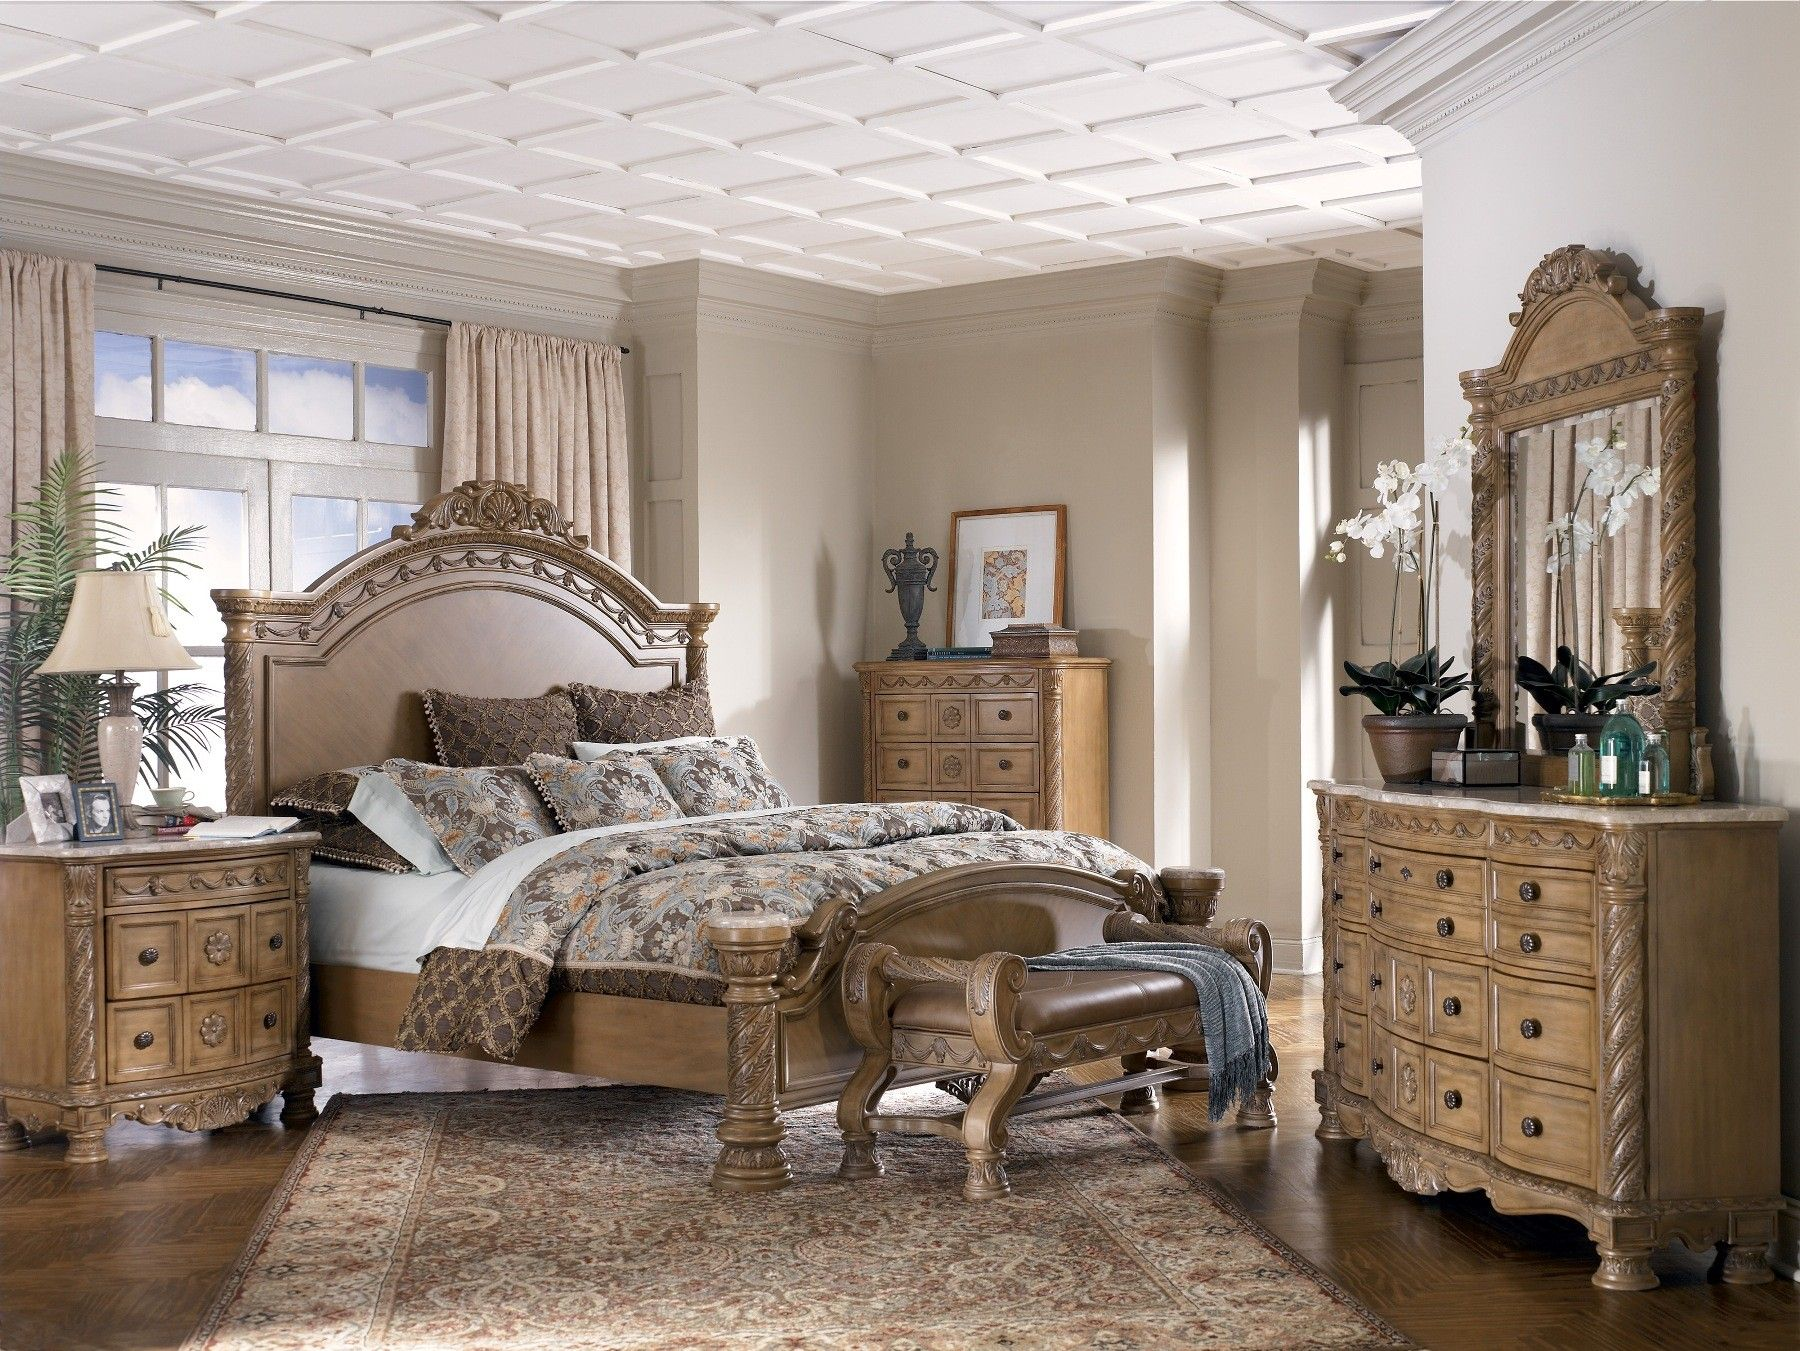 Ashley furniture gallery ashley furniture south coast for Bedroom furnishings